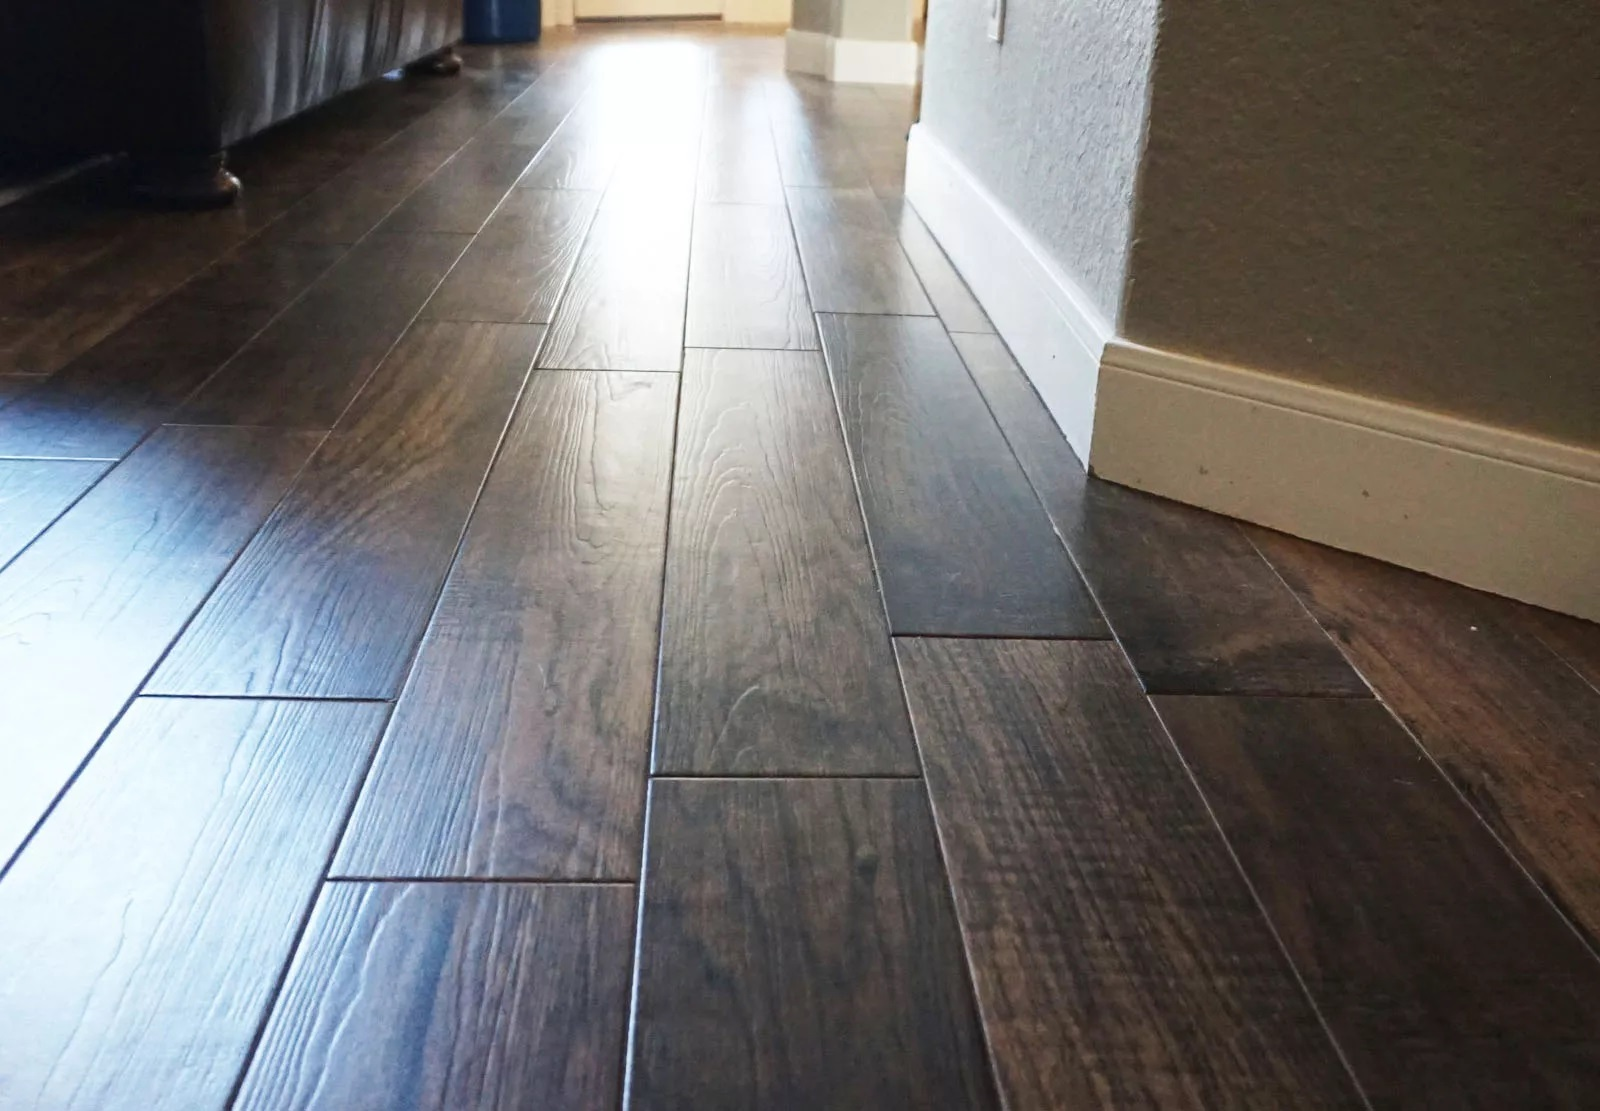 How To Save Money On Flooring With Ceramic Tiles?